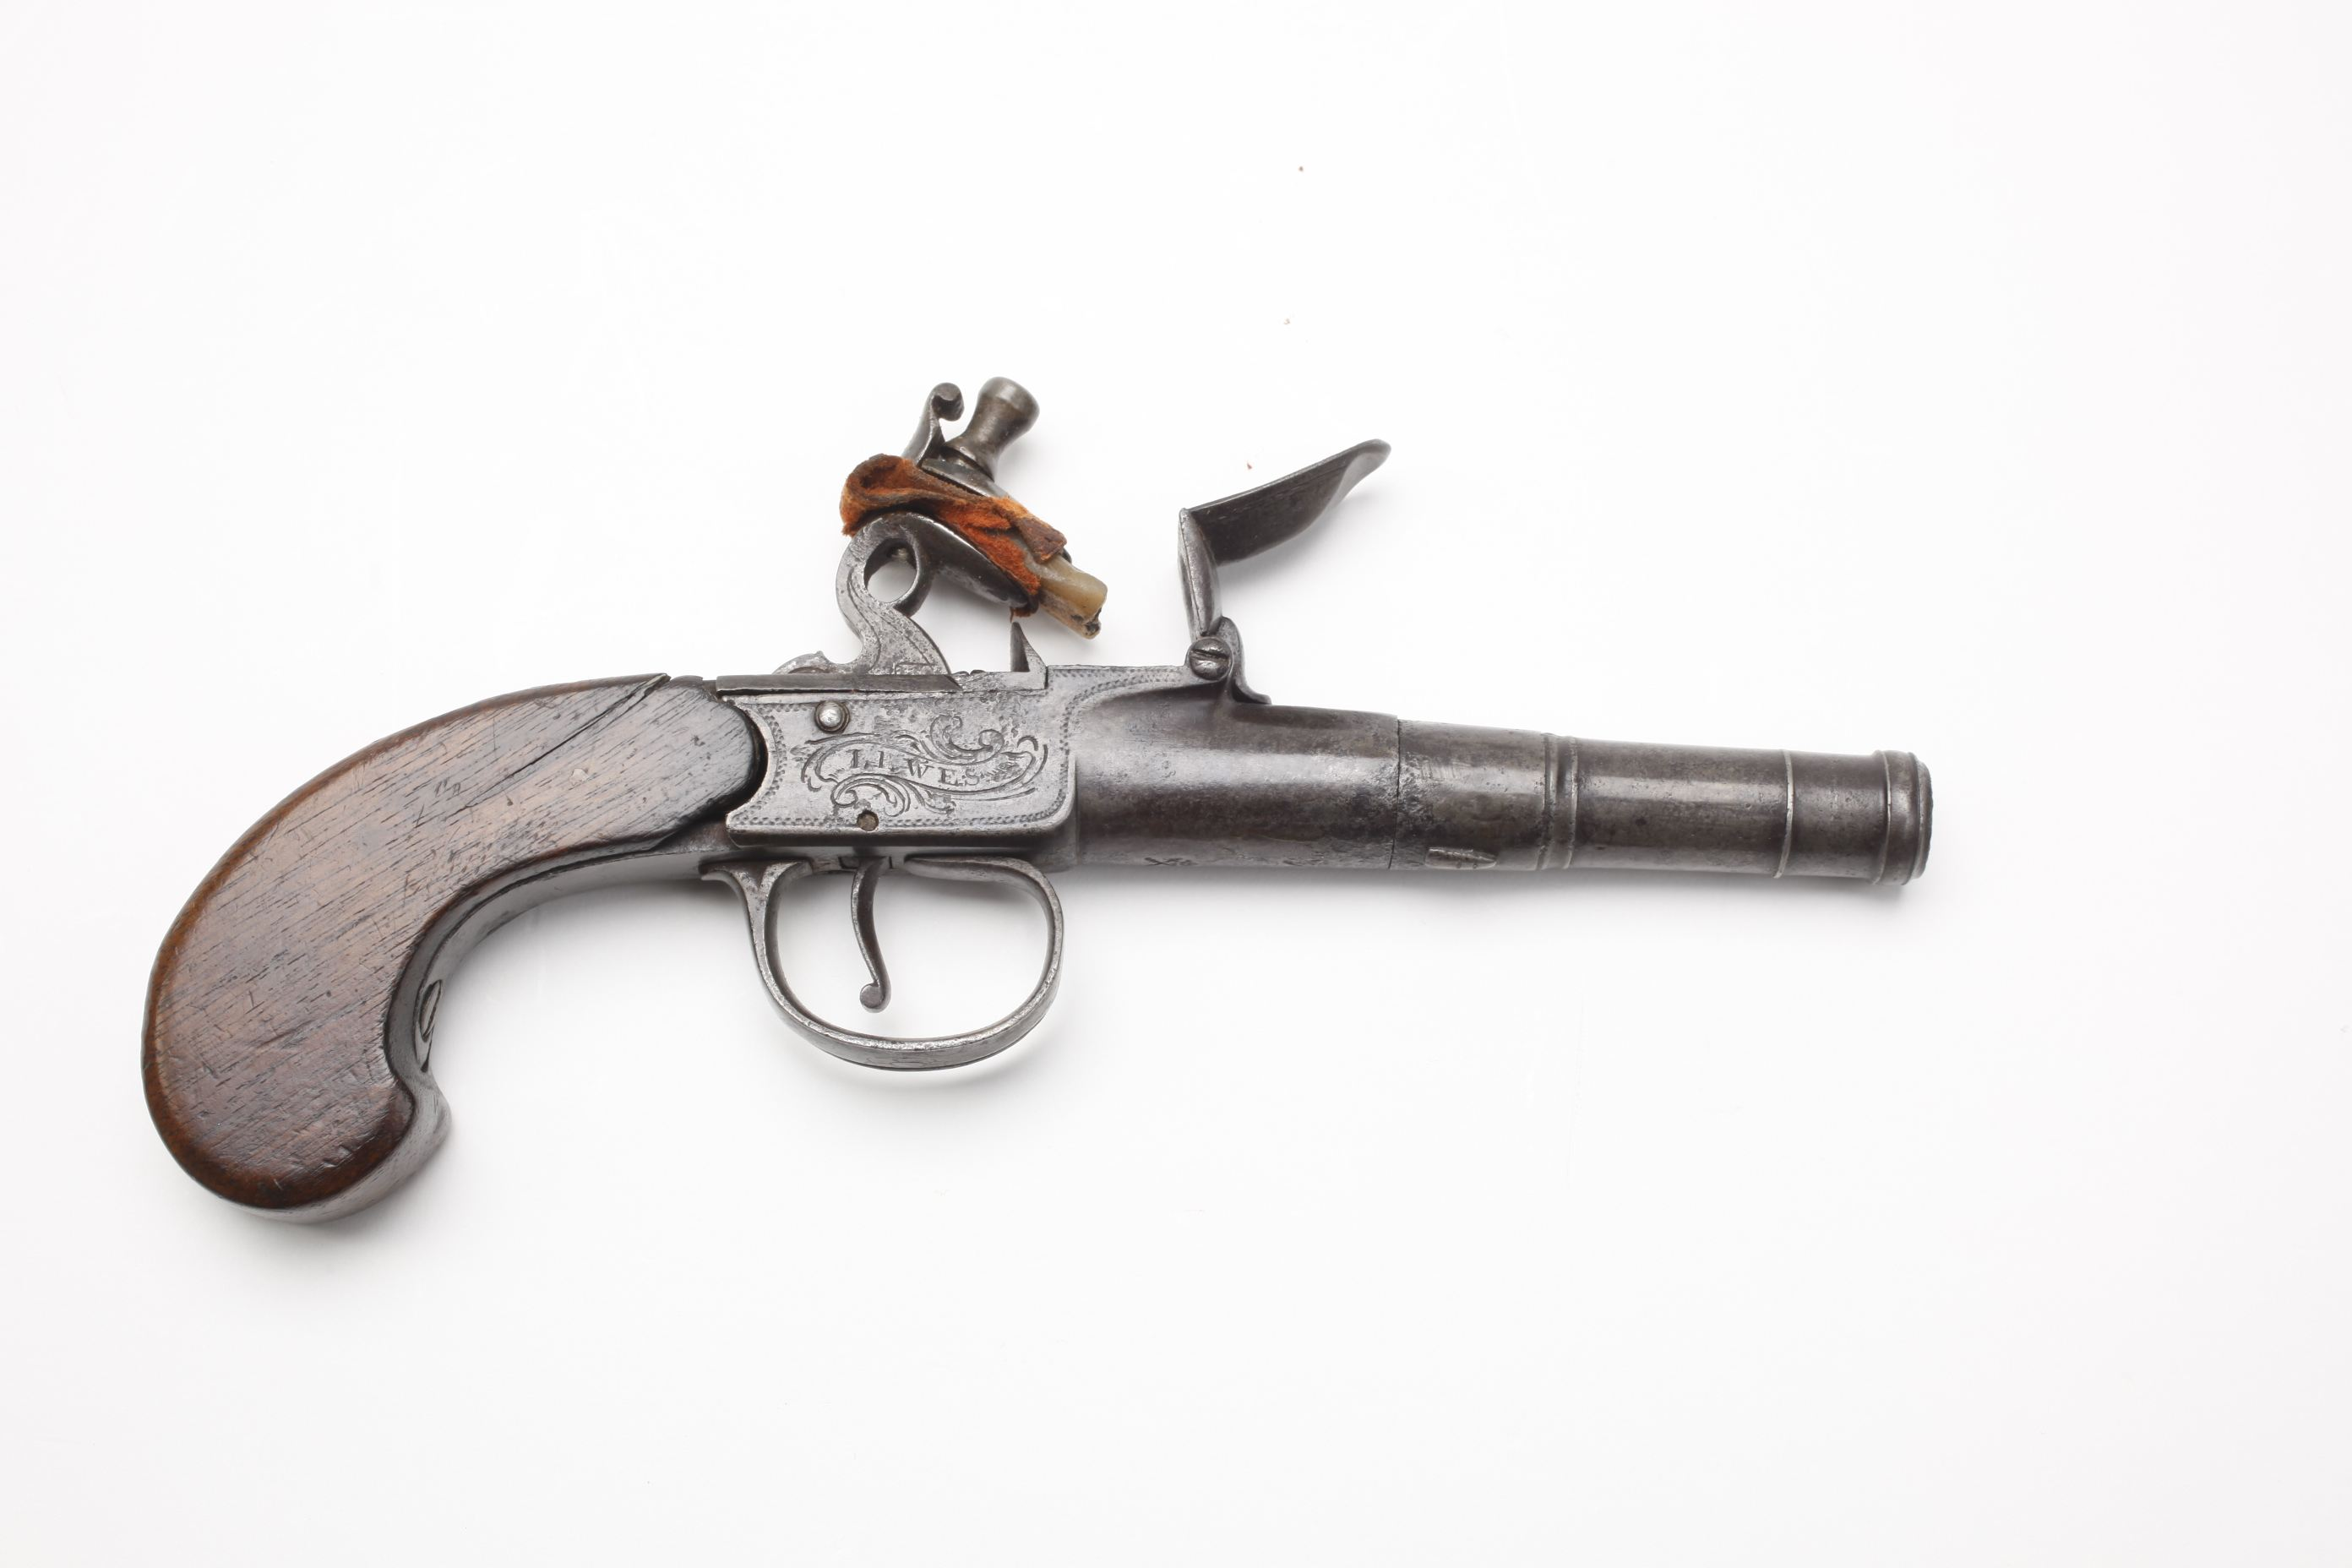 A. B. Weston Flintlock Turn barrel Pistol